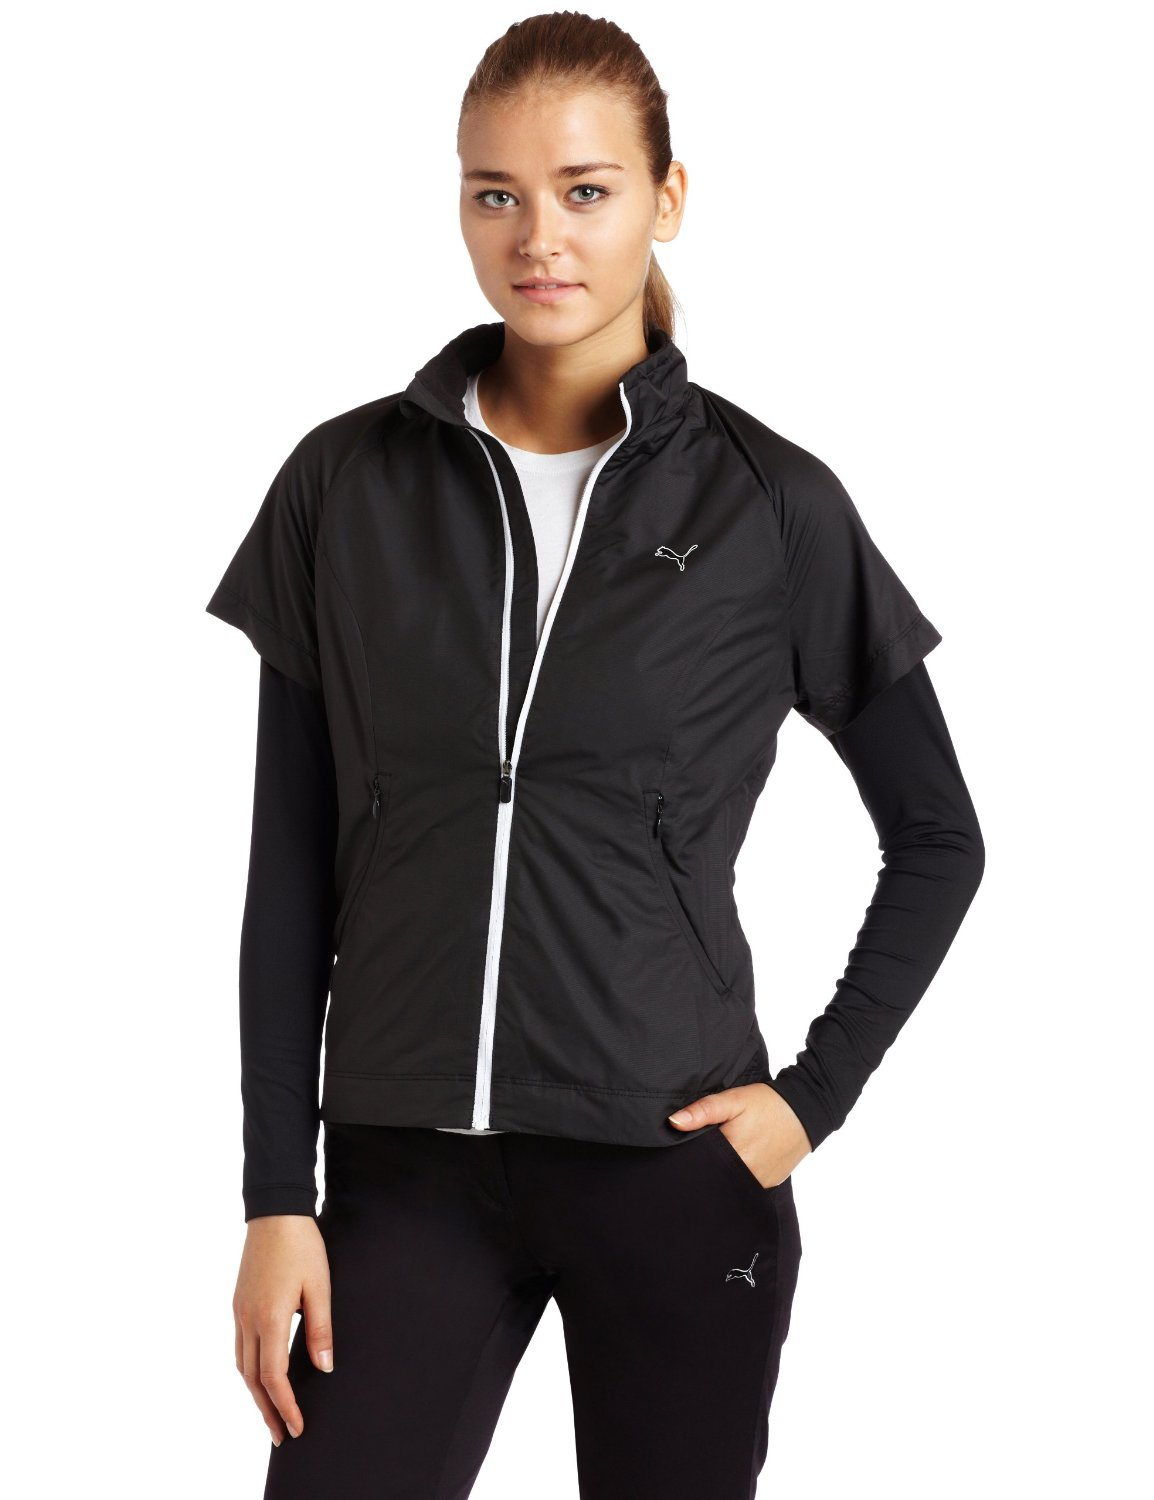 Womens Puma Golf Wind Jackets